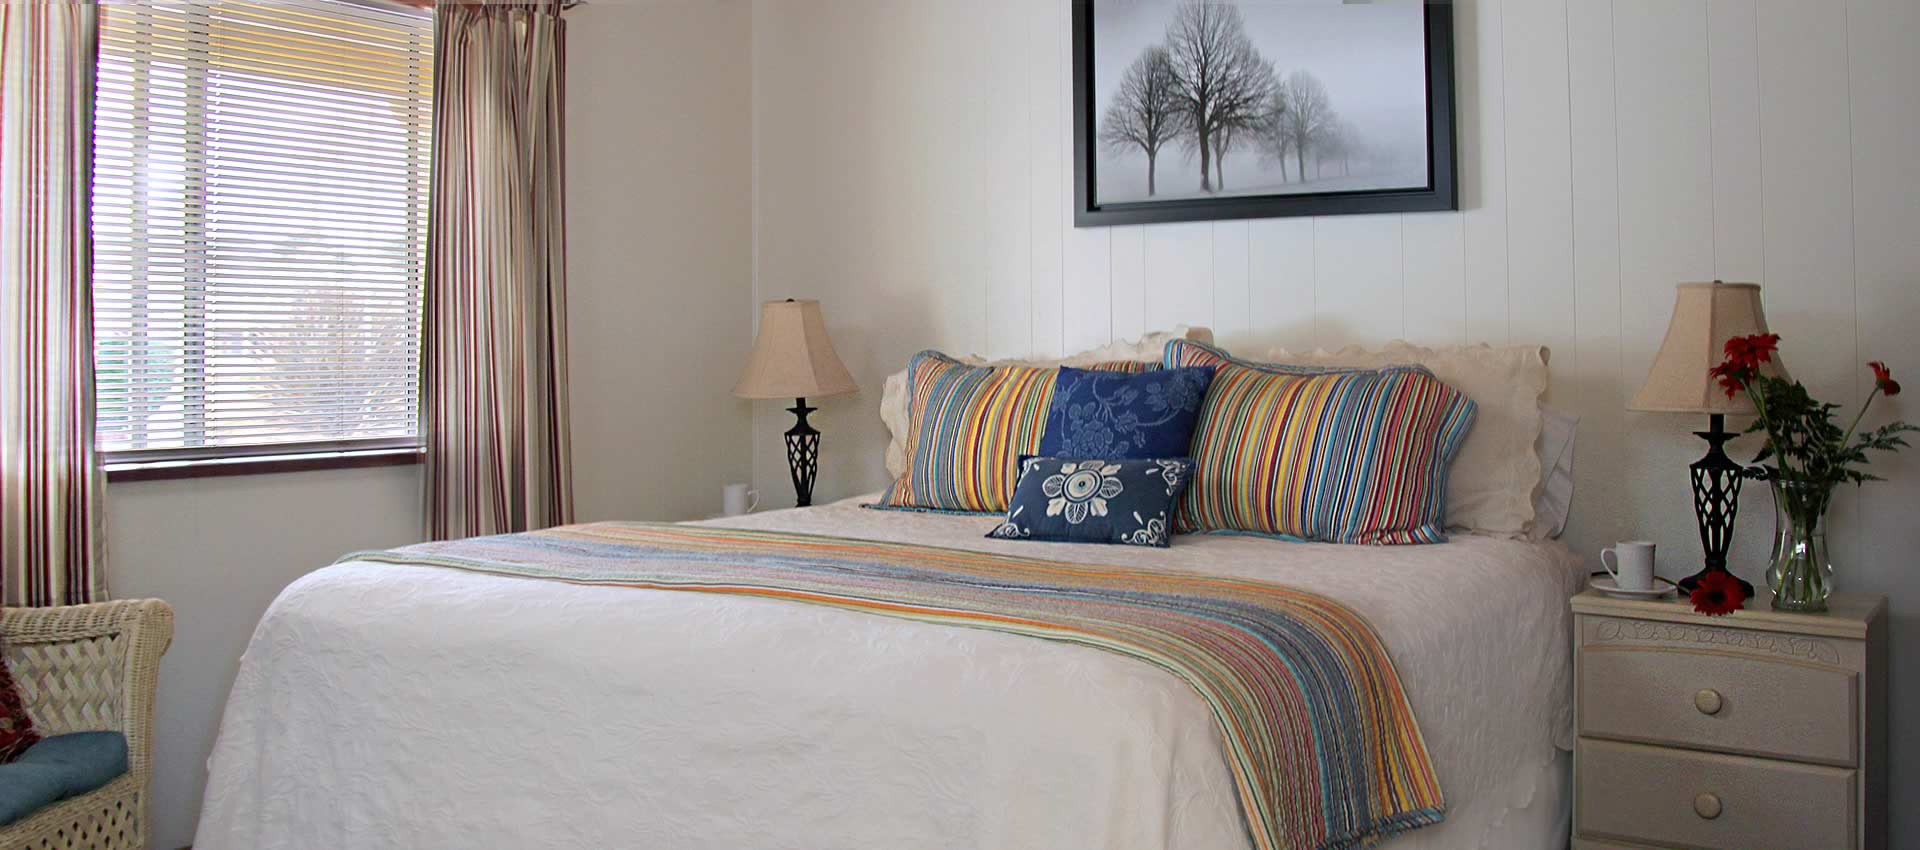 Williams Creek Family Suite king bed